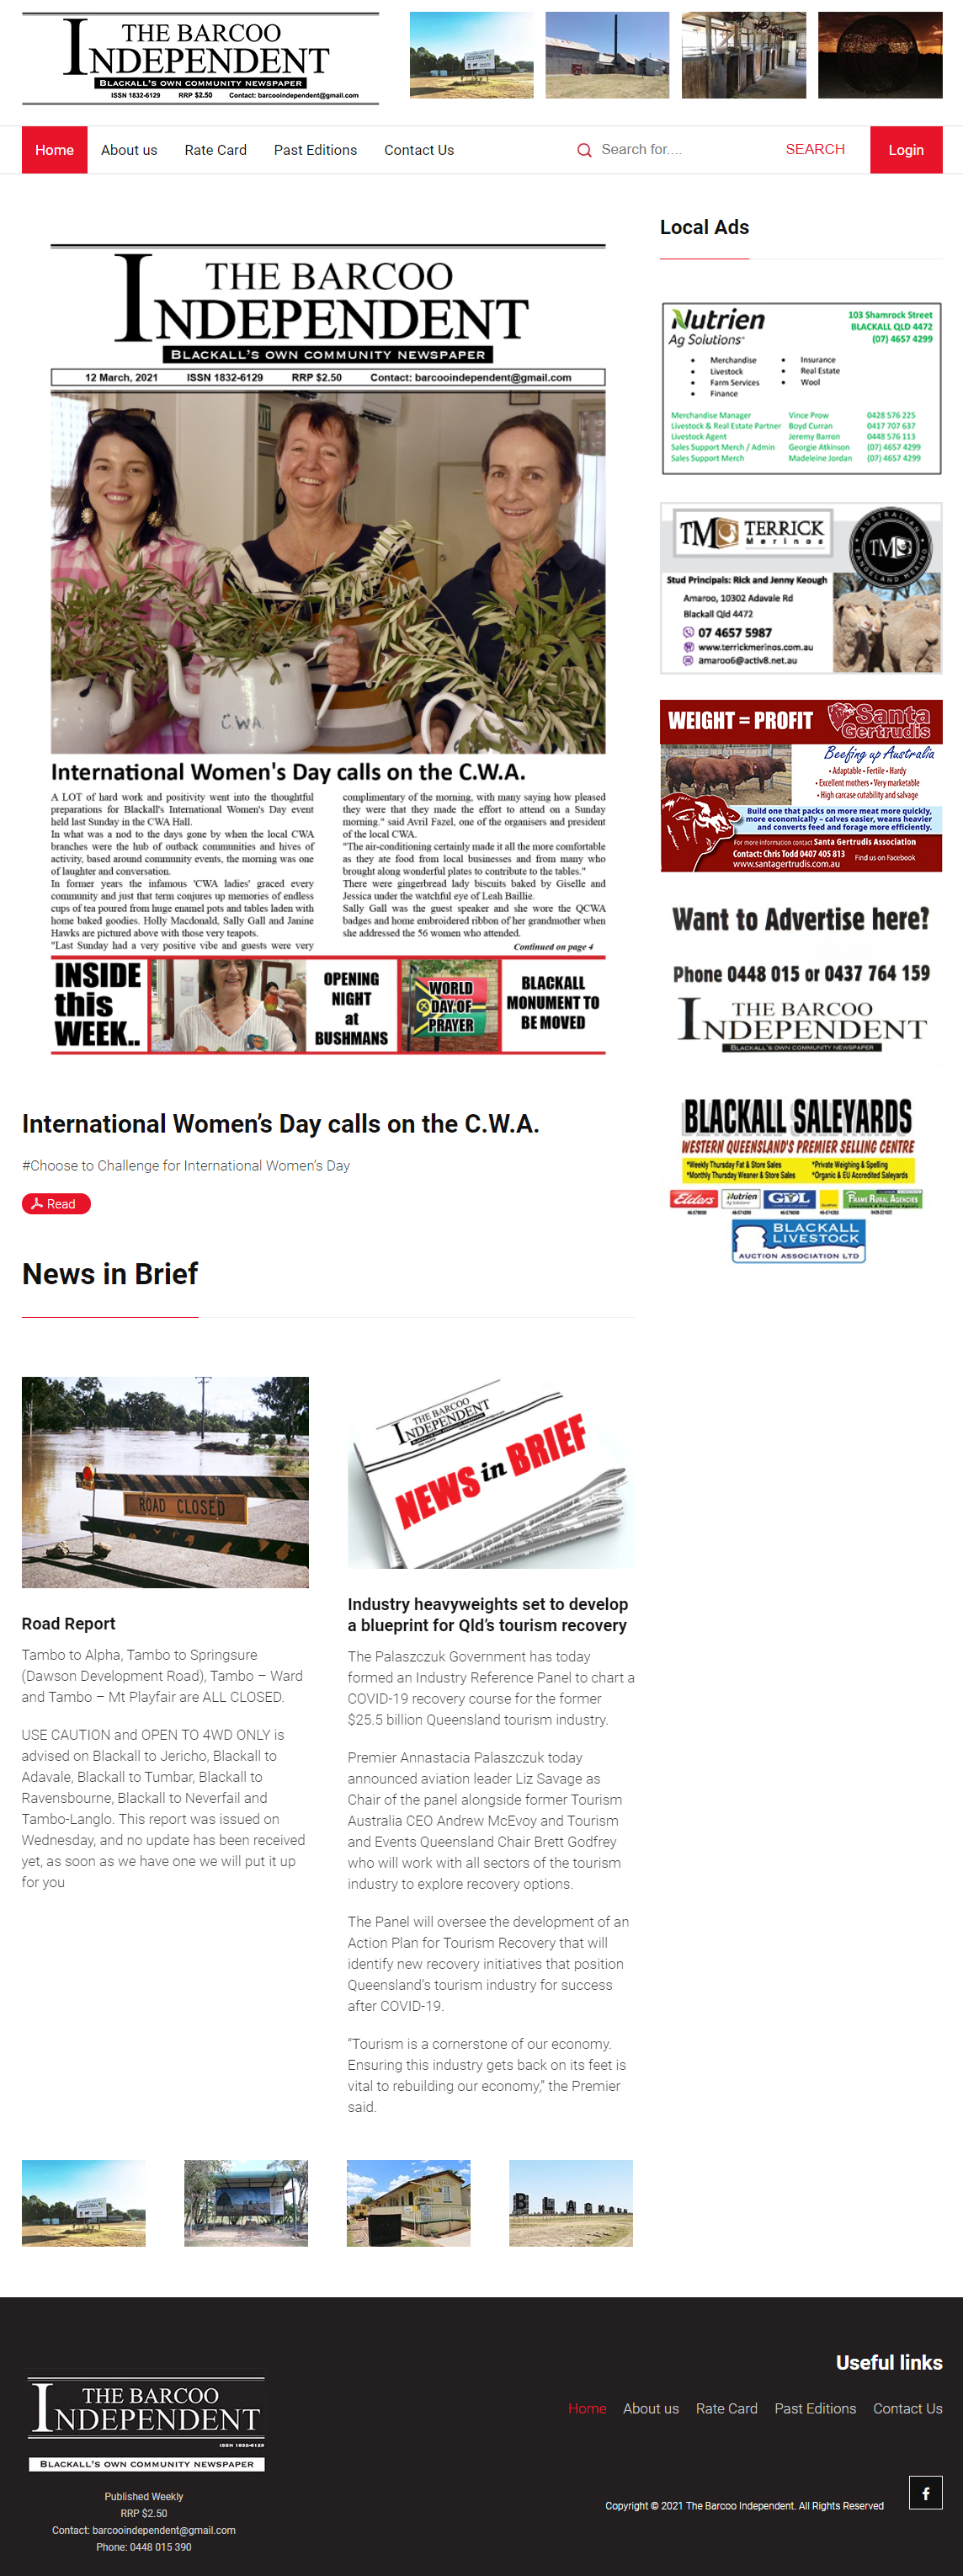 The Barcoo Independent :: PMZ Marketing